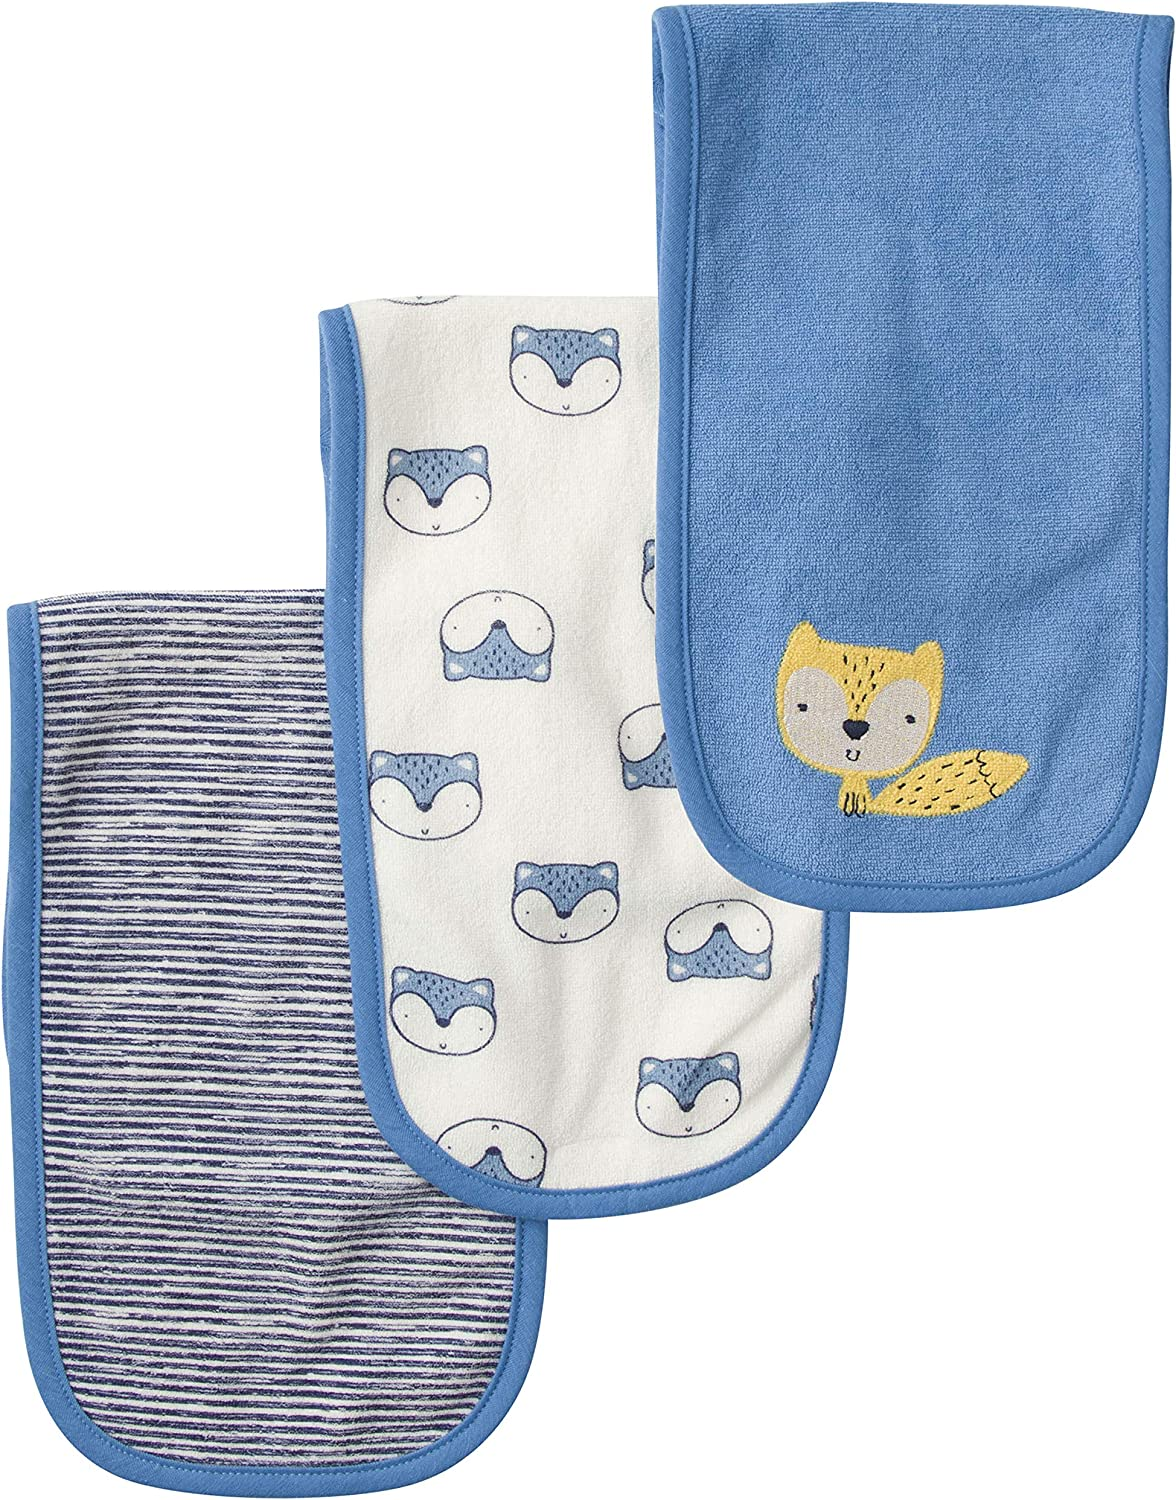 Starry Dreams Gerber Baby 3 Pack Knit Burp Cloth One Size